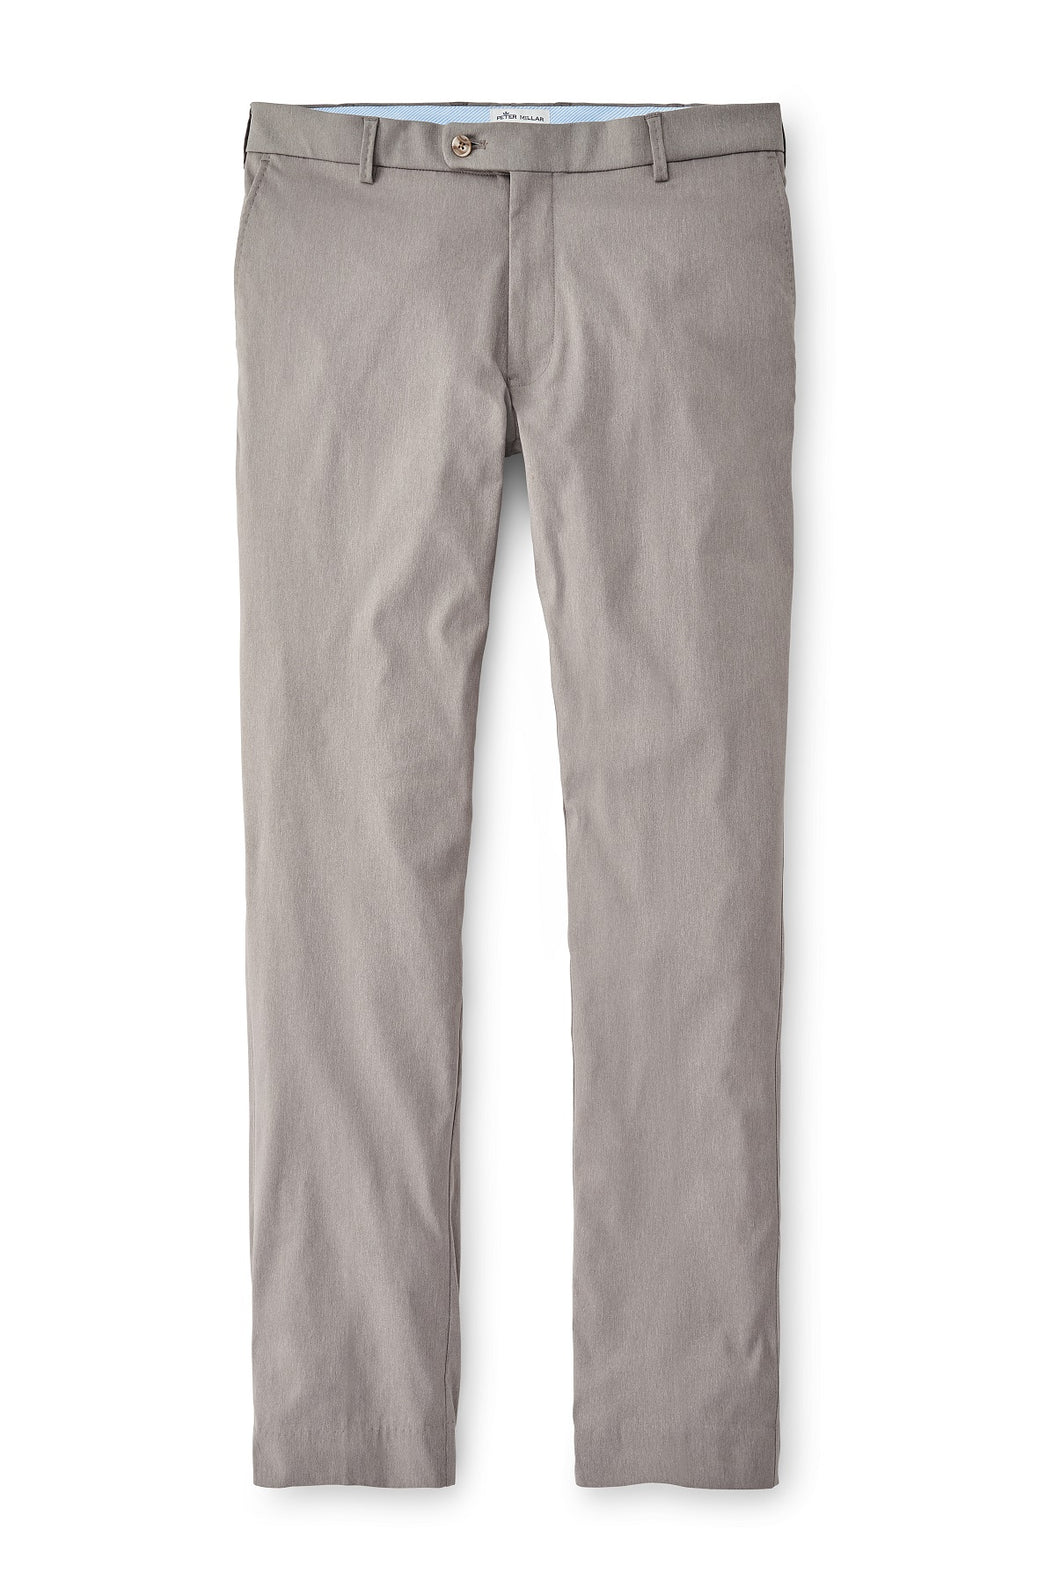 Peter Millar Highlands Performance Trousers-Pearl Grey